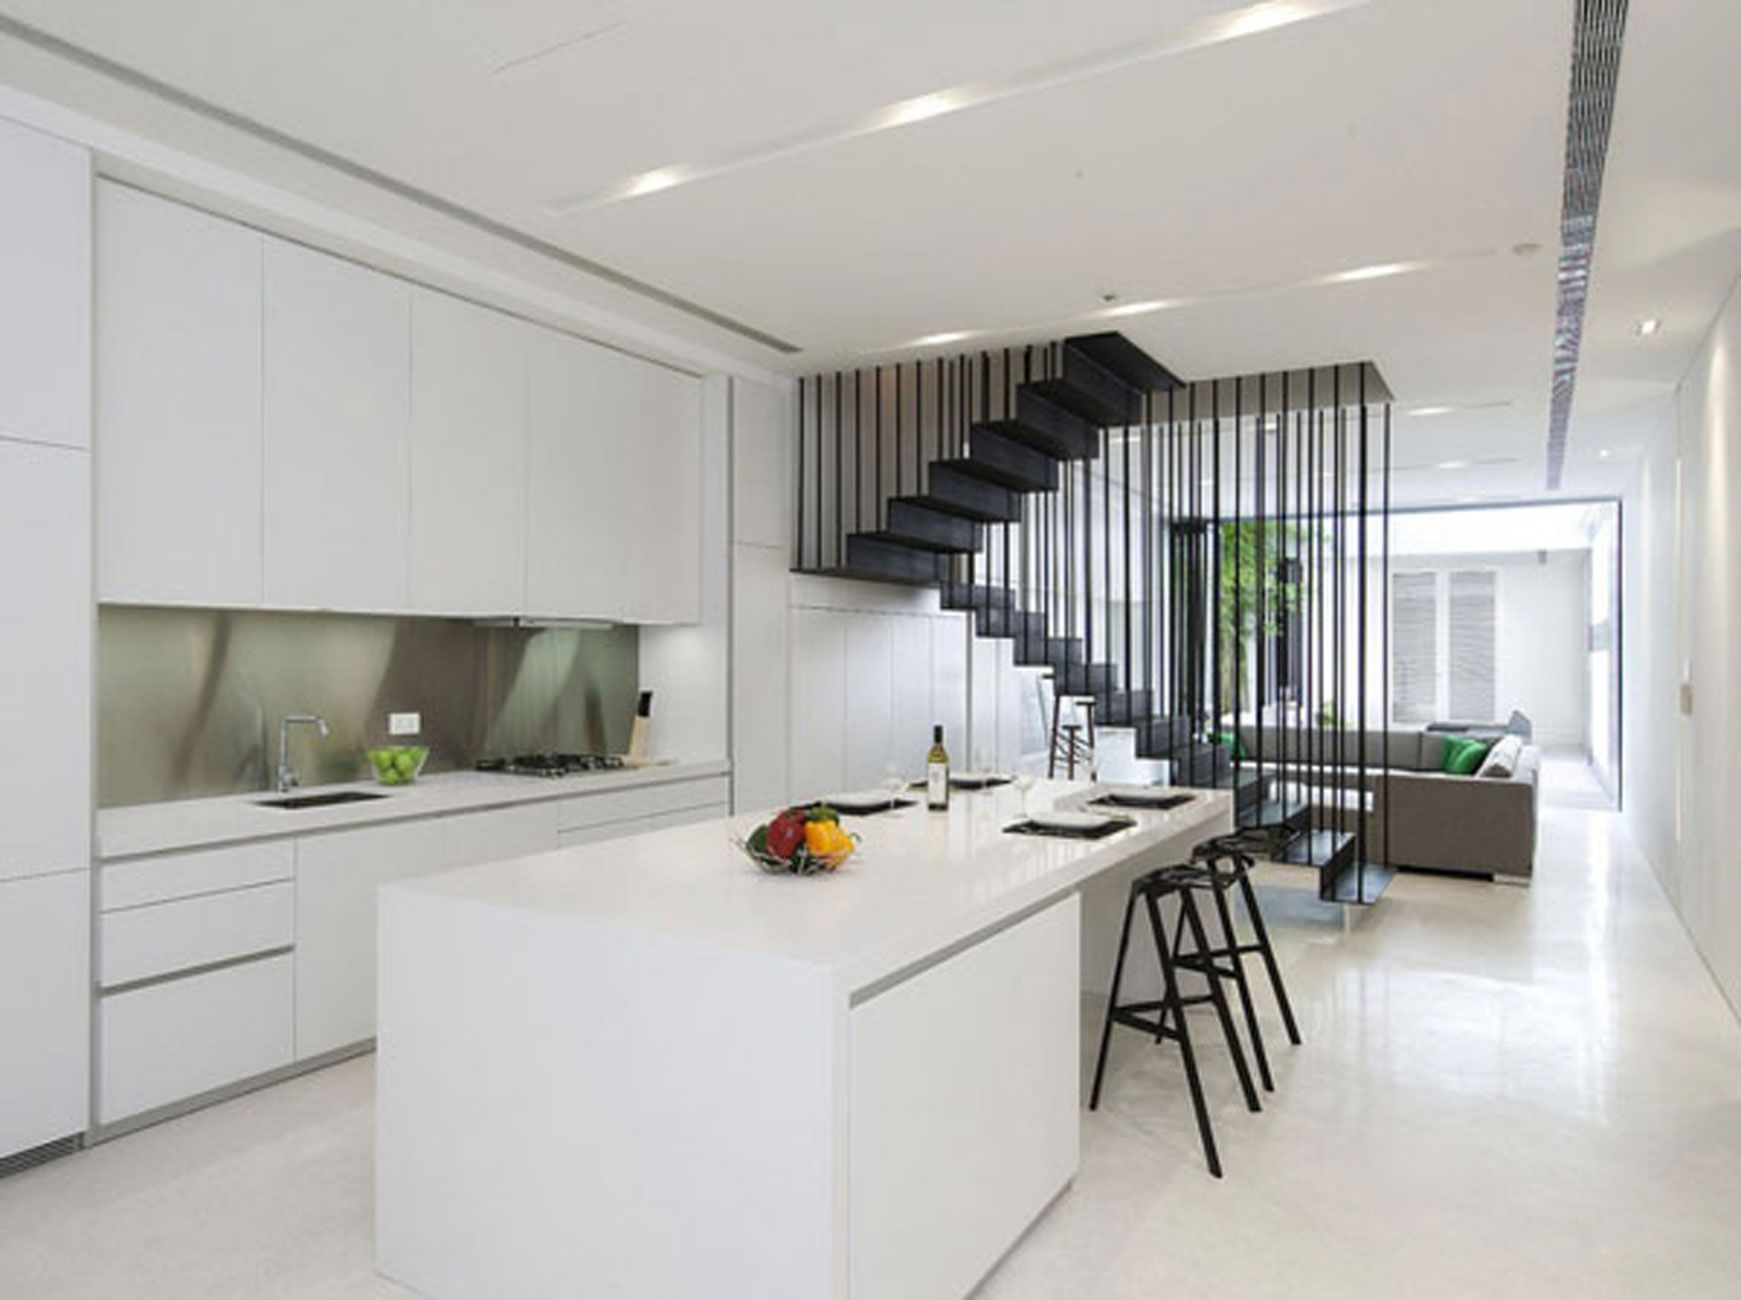 interior design for living room and kitchen - 1000+ images about Minimalist - Kitchen on Pinterest Minimalist ...